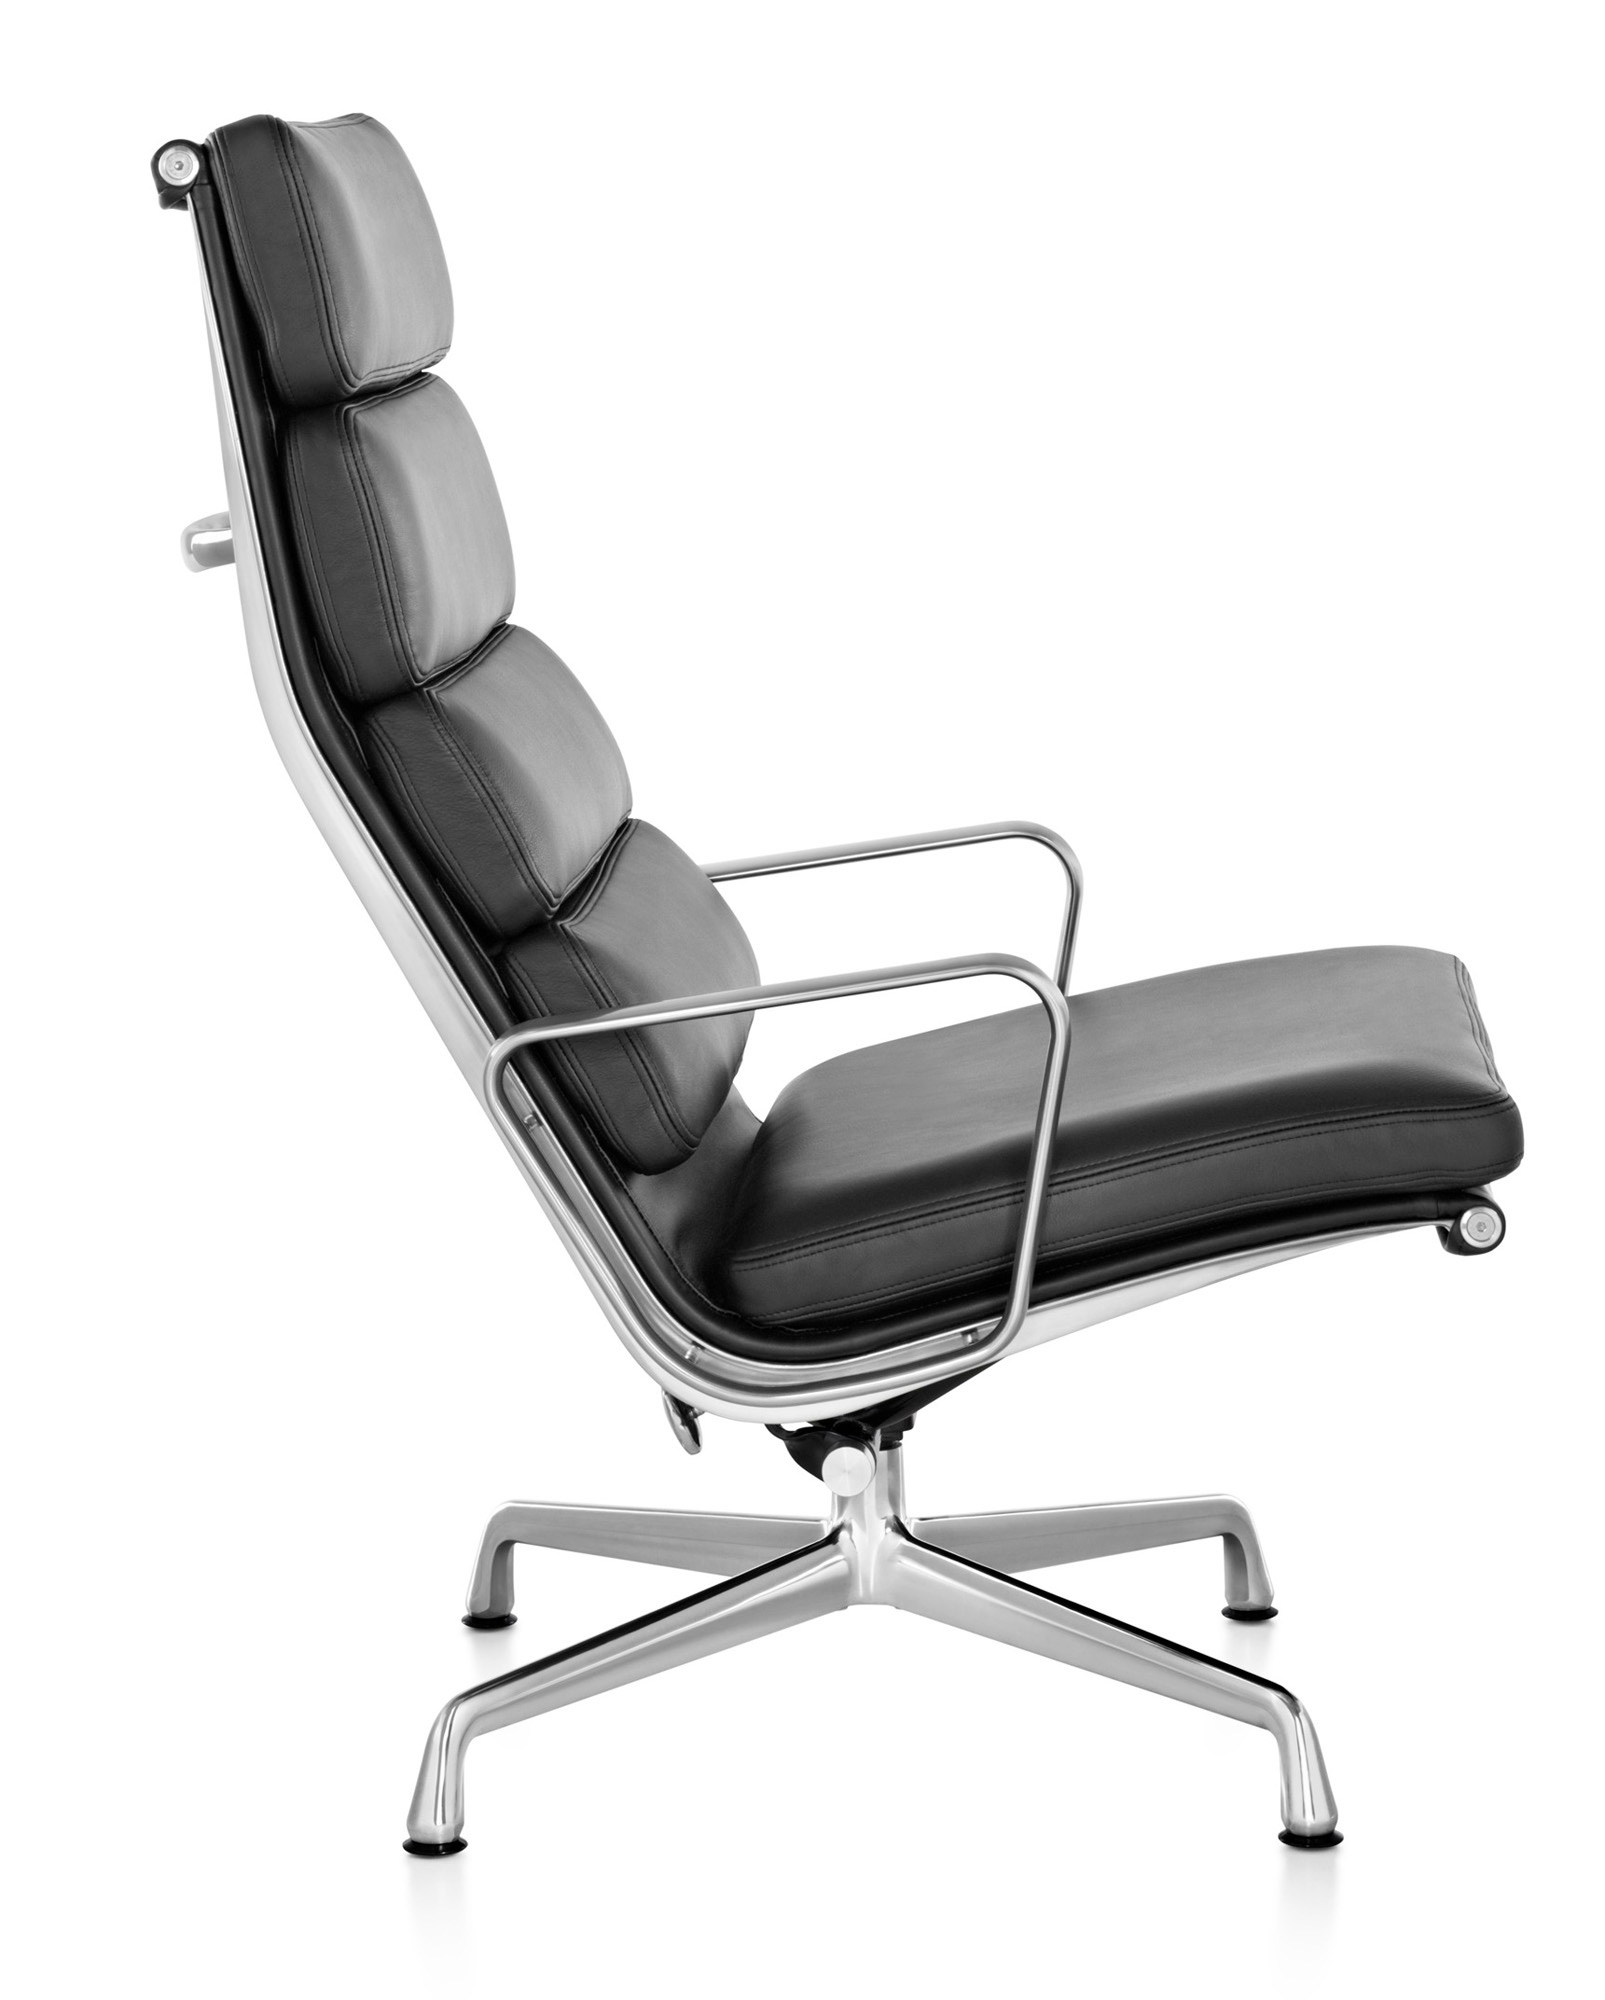 Herman miller eames soft pad chair lounge chair gr for Eames herman miller lounge chair